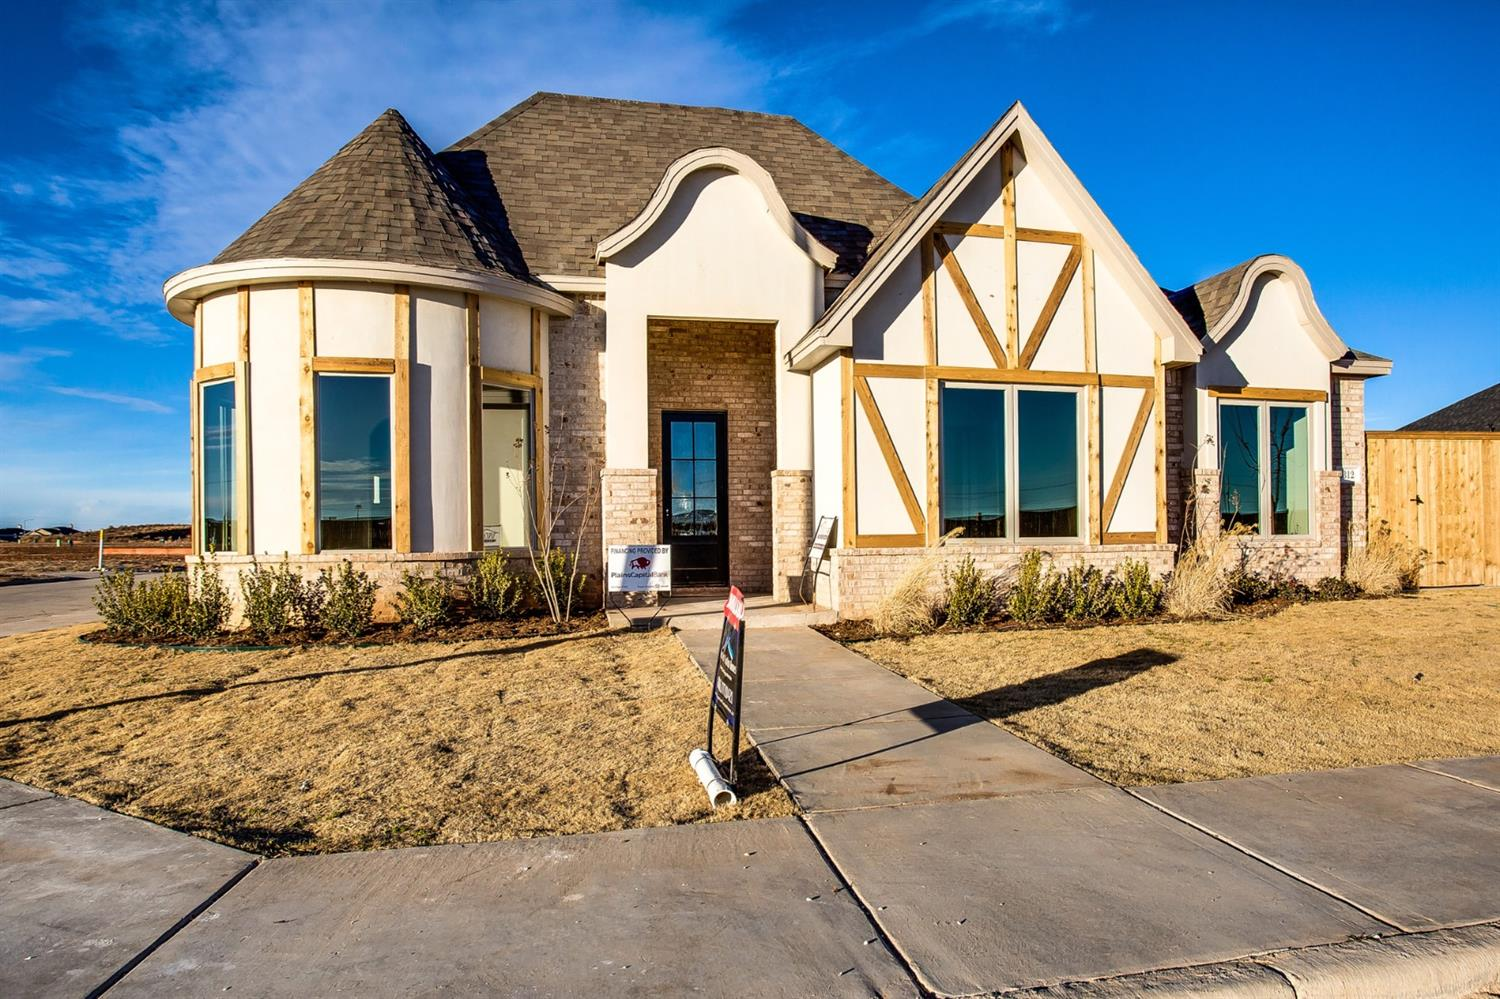 Welcome to Lubbock's newest premier neighborhood, Abbey Glen! Abbey Glen is conveniently located in southwest Lubbock just west of Slide Rd. and 114th St.  This planned development is located in Cooper schools and will feature its own private park.  This beautiful 3/2/3 home was built by award winning Clearview Custom Homes.  This unique home offers an elegant round dining room, large great room and gourmet kitchen, and large laundry room!  The isolated master offers double vanities, separate shower and tub, and large walk in closet.